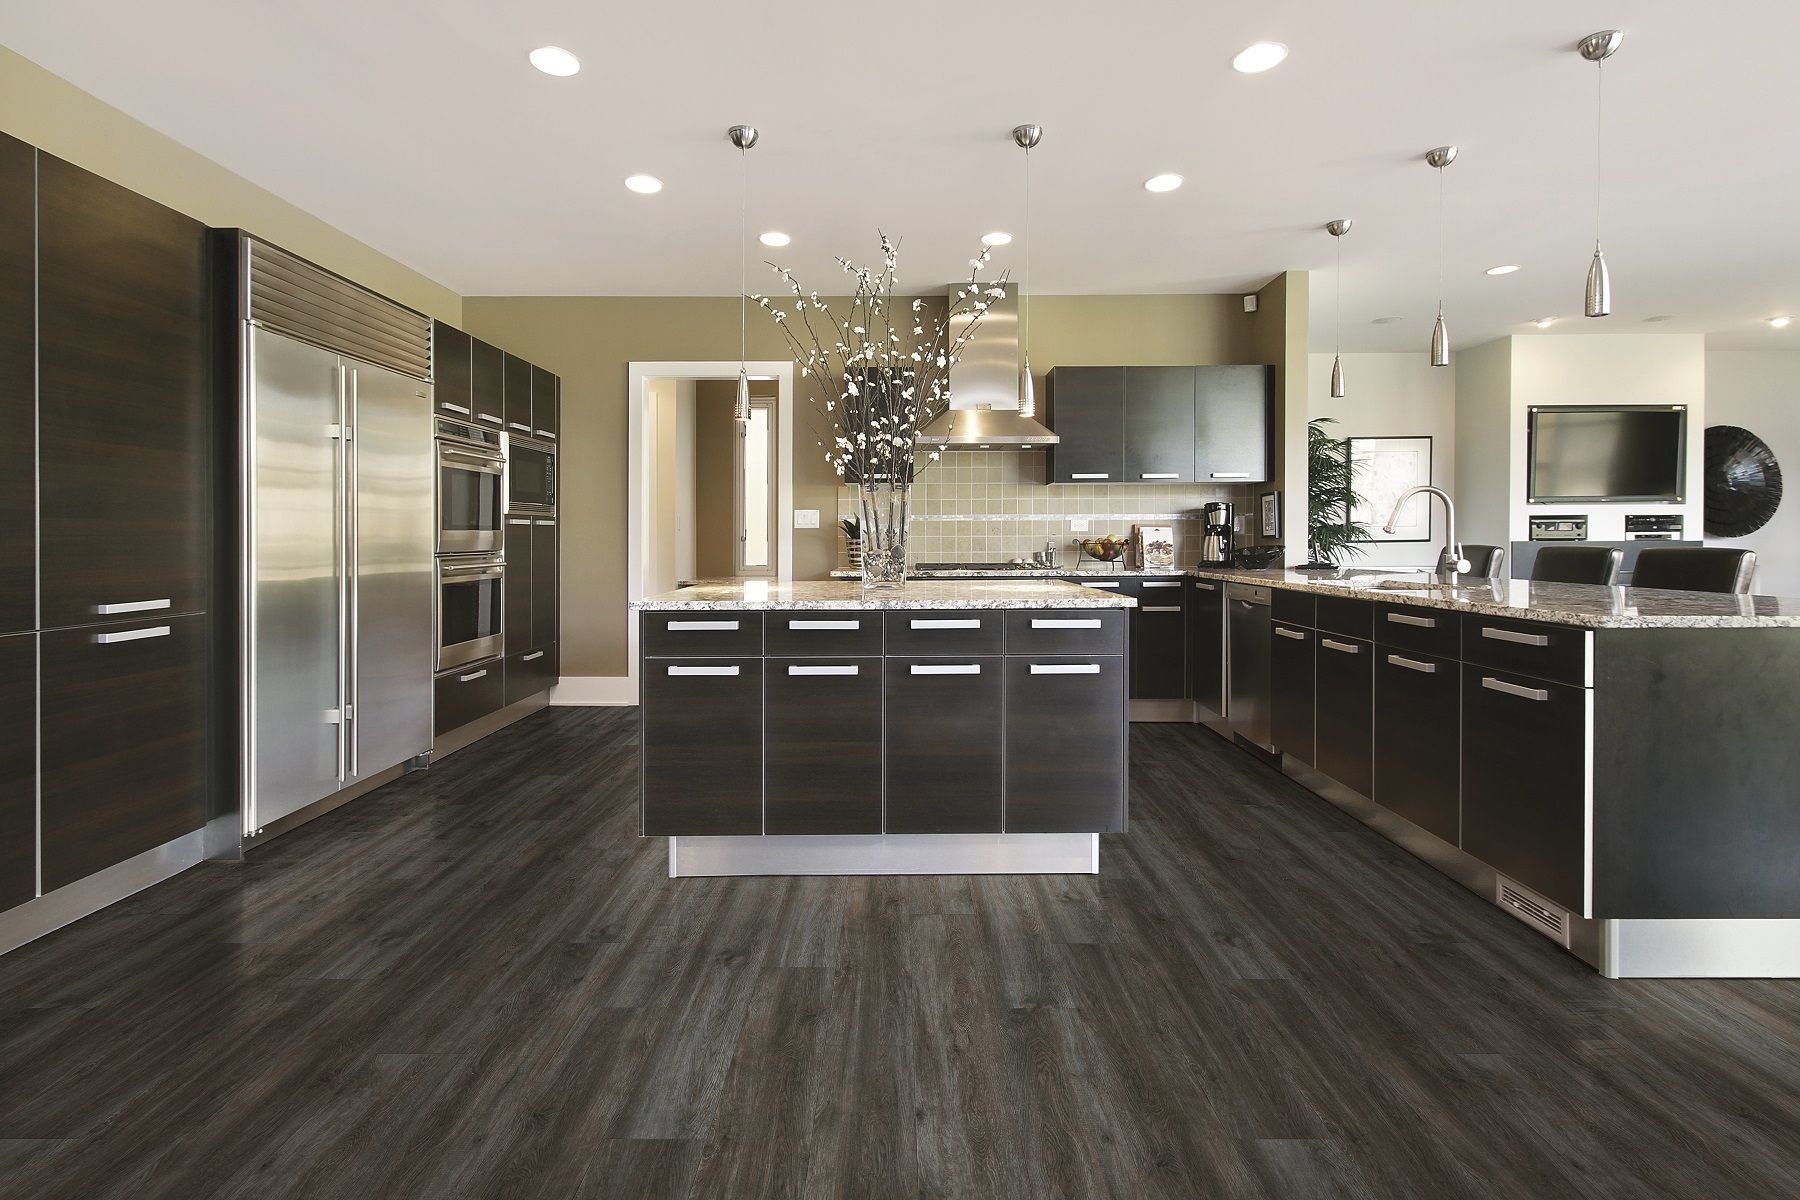 Waterproof Laminate Flooring For Kitchens Coretec Plus Xl Metropolis Oak Large Modern Kitchen Lvt